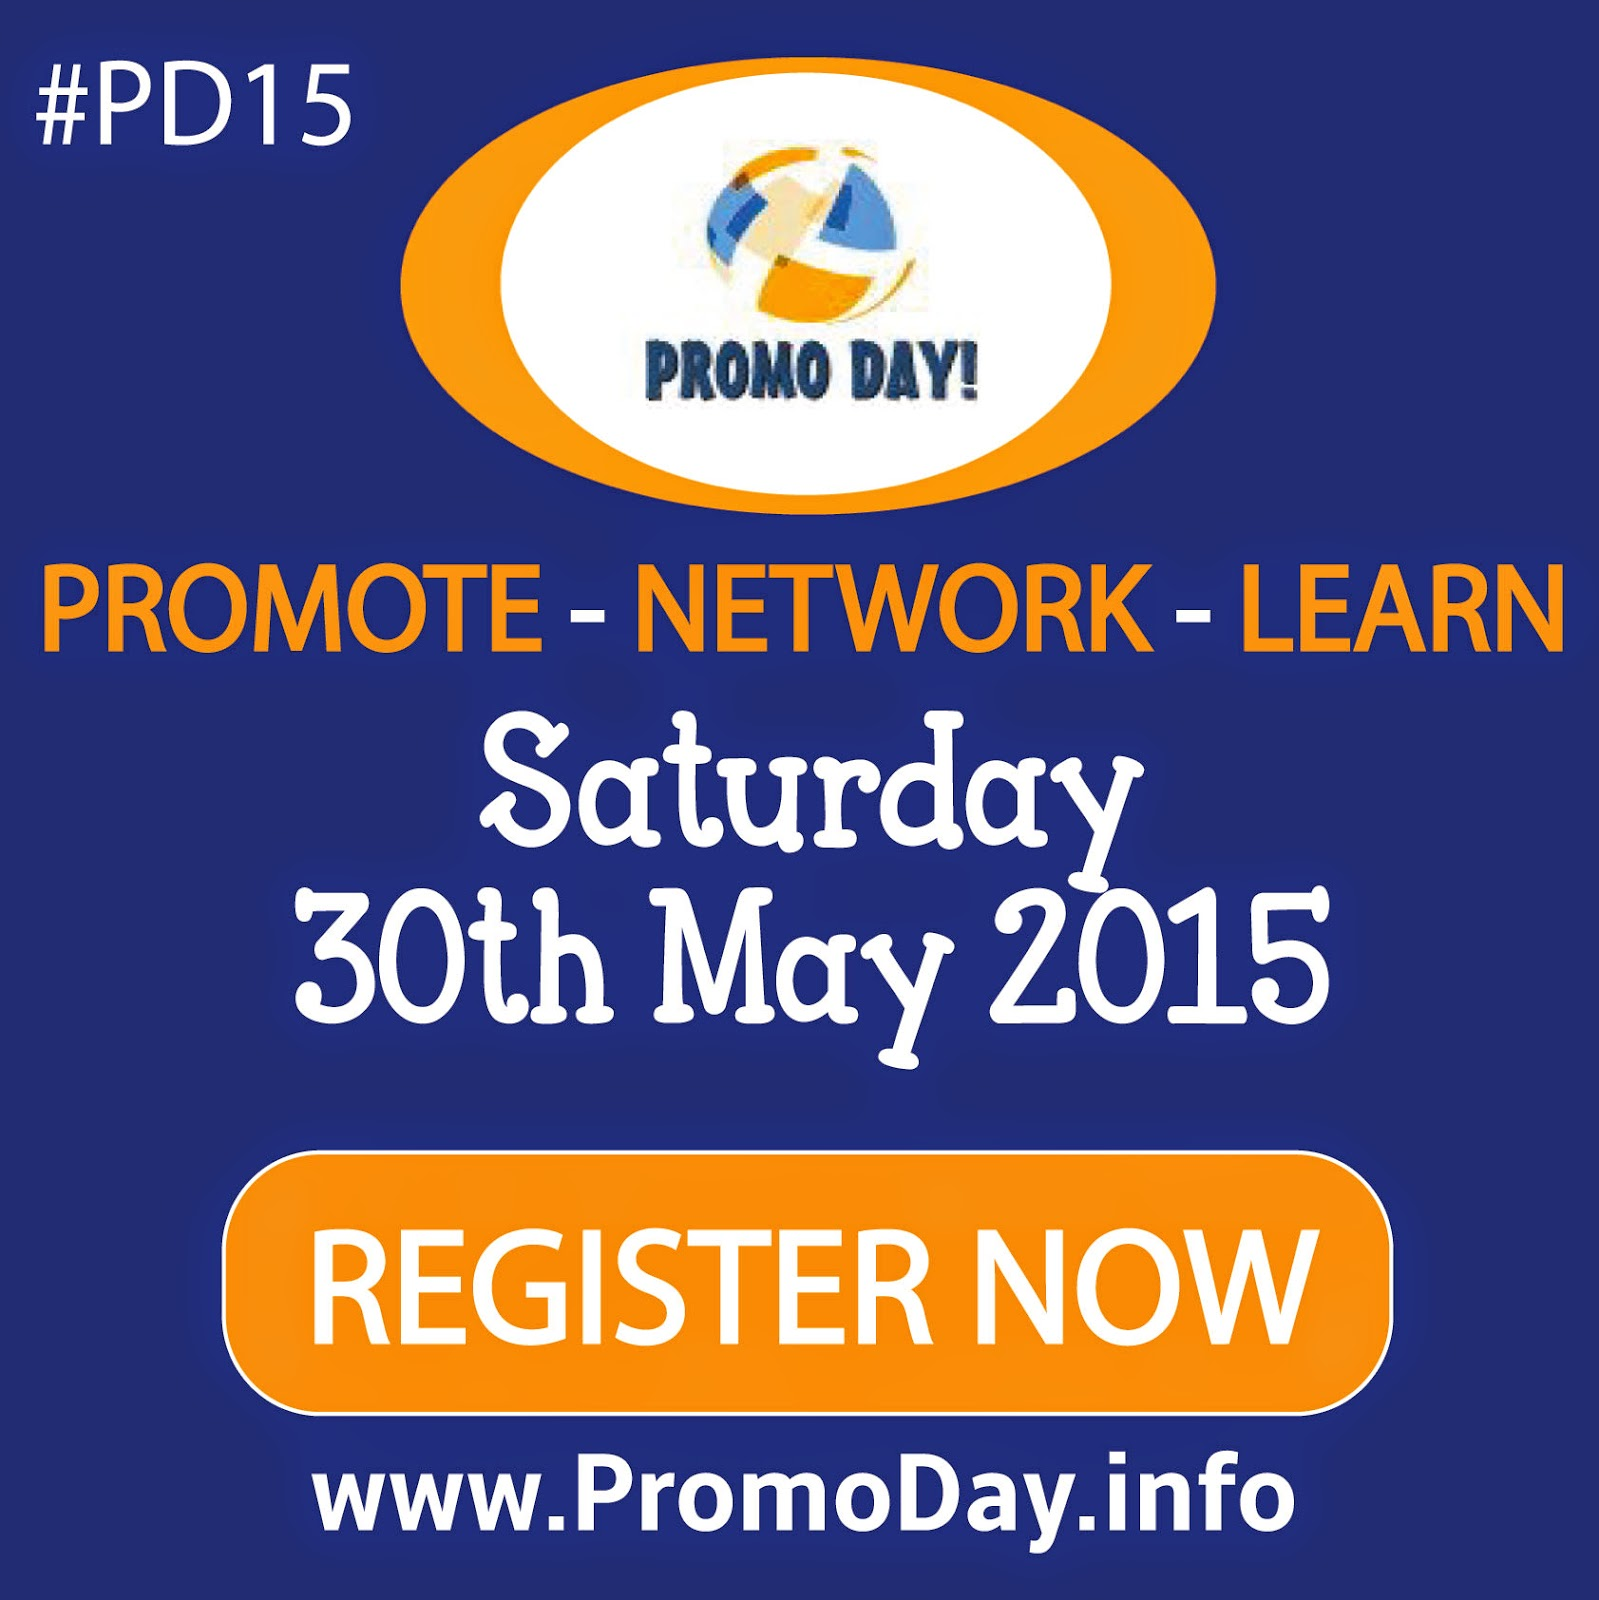 Register now for #PD15 at www.PromoDay.info. A whole day dedicated to promoting, networking, and learning. It's completely free too!